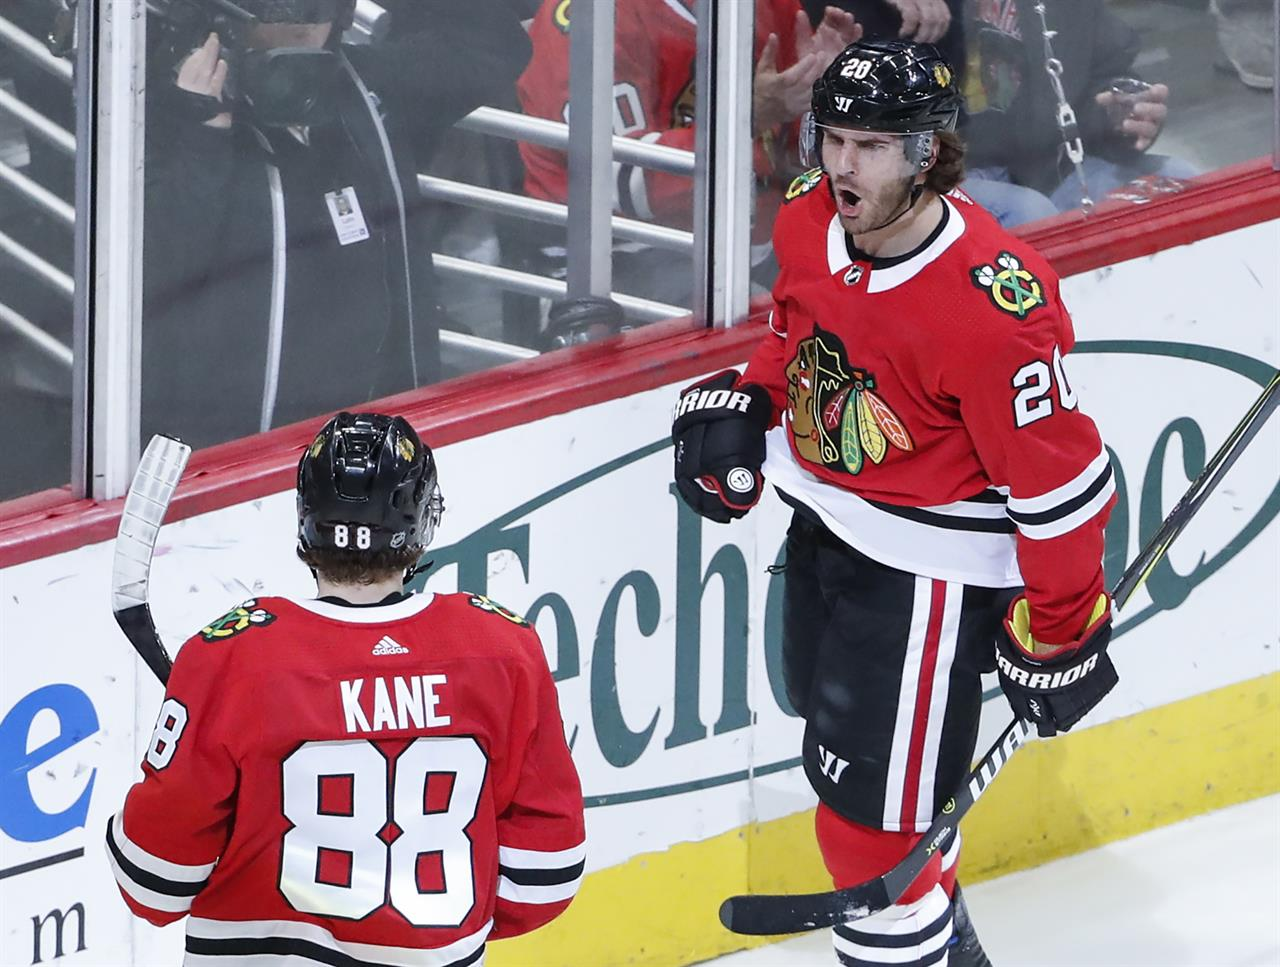 Accountant Turned Goalie Helps Blackhawks Beat Jets Am 1420 The